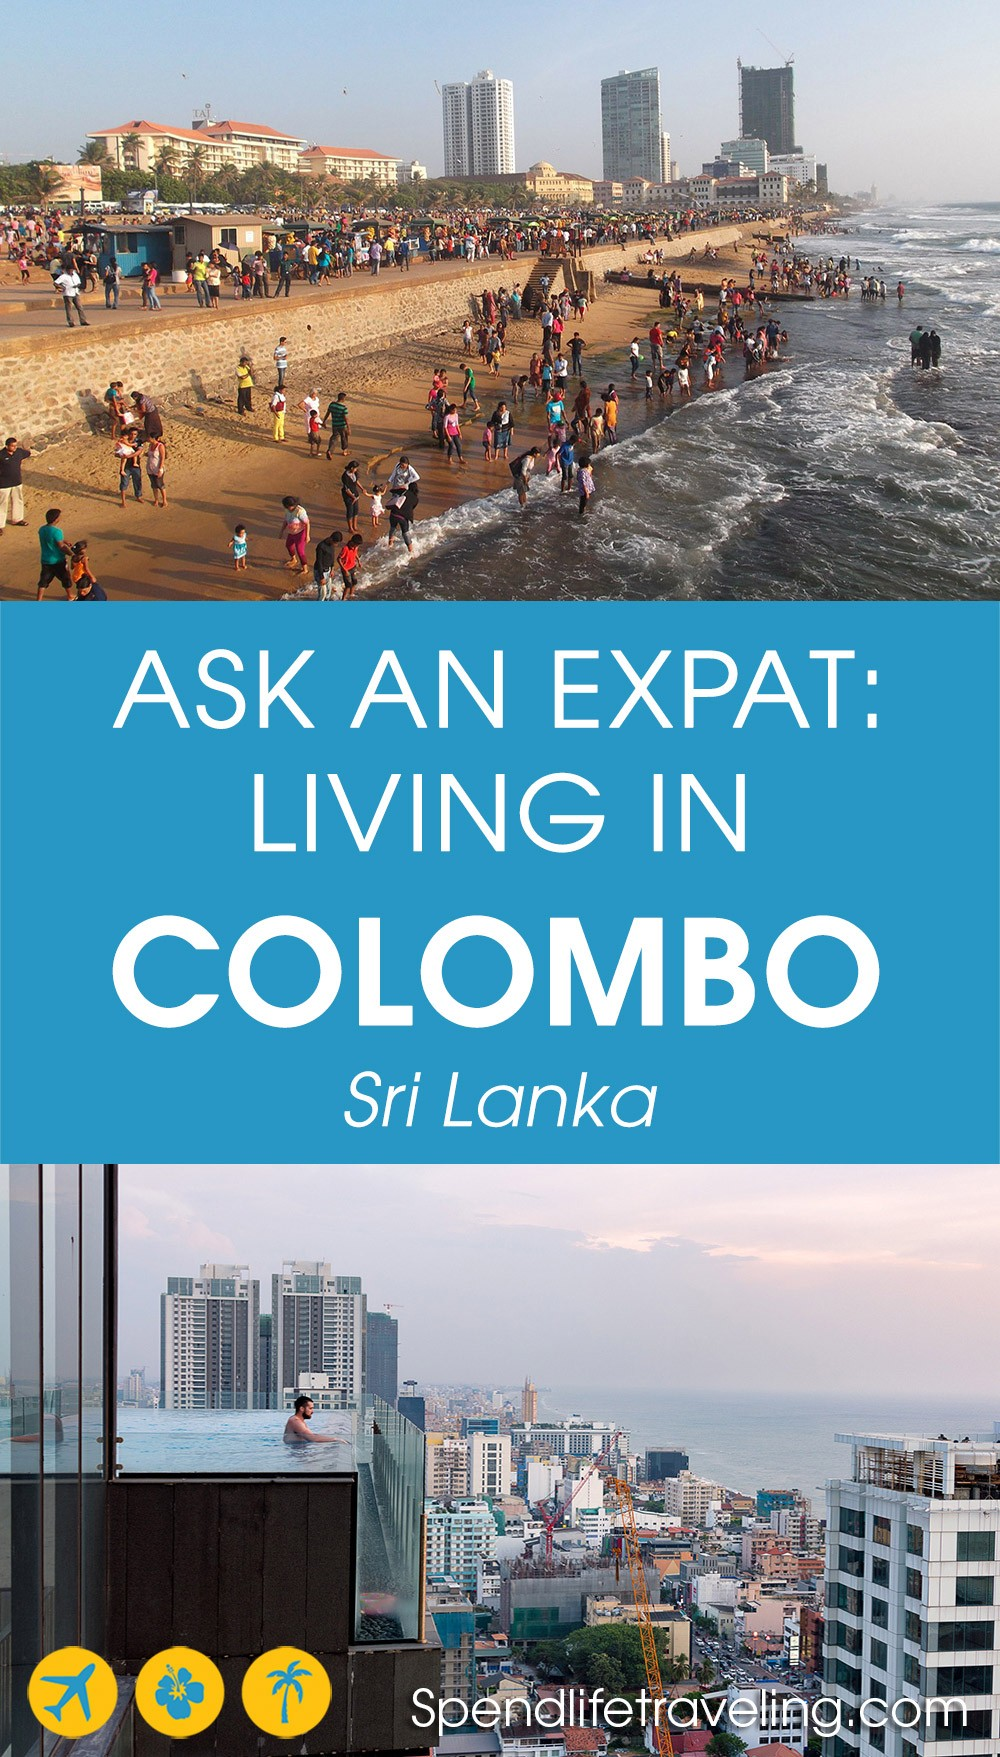 Interview about moving to and living in #Colombo, Sri Lanka's capital as an #expat. #expatlife #moveabroad #liveabroad #lifeinSriLanka